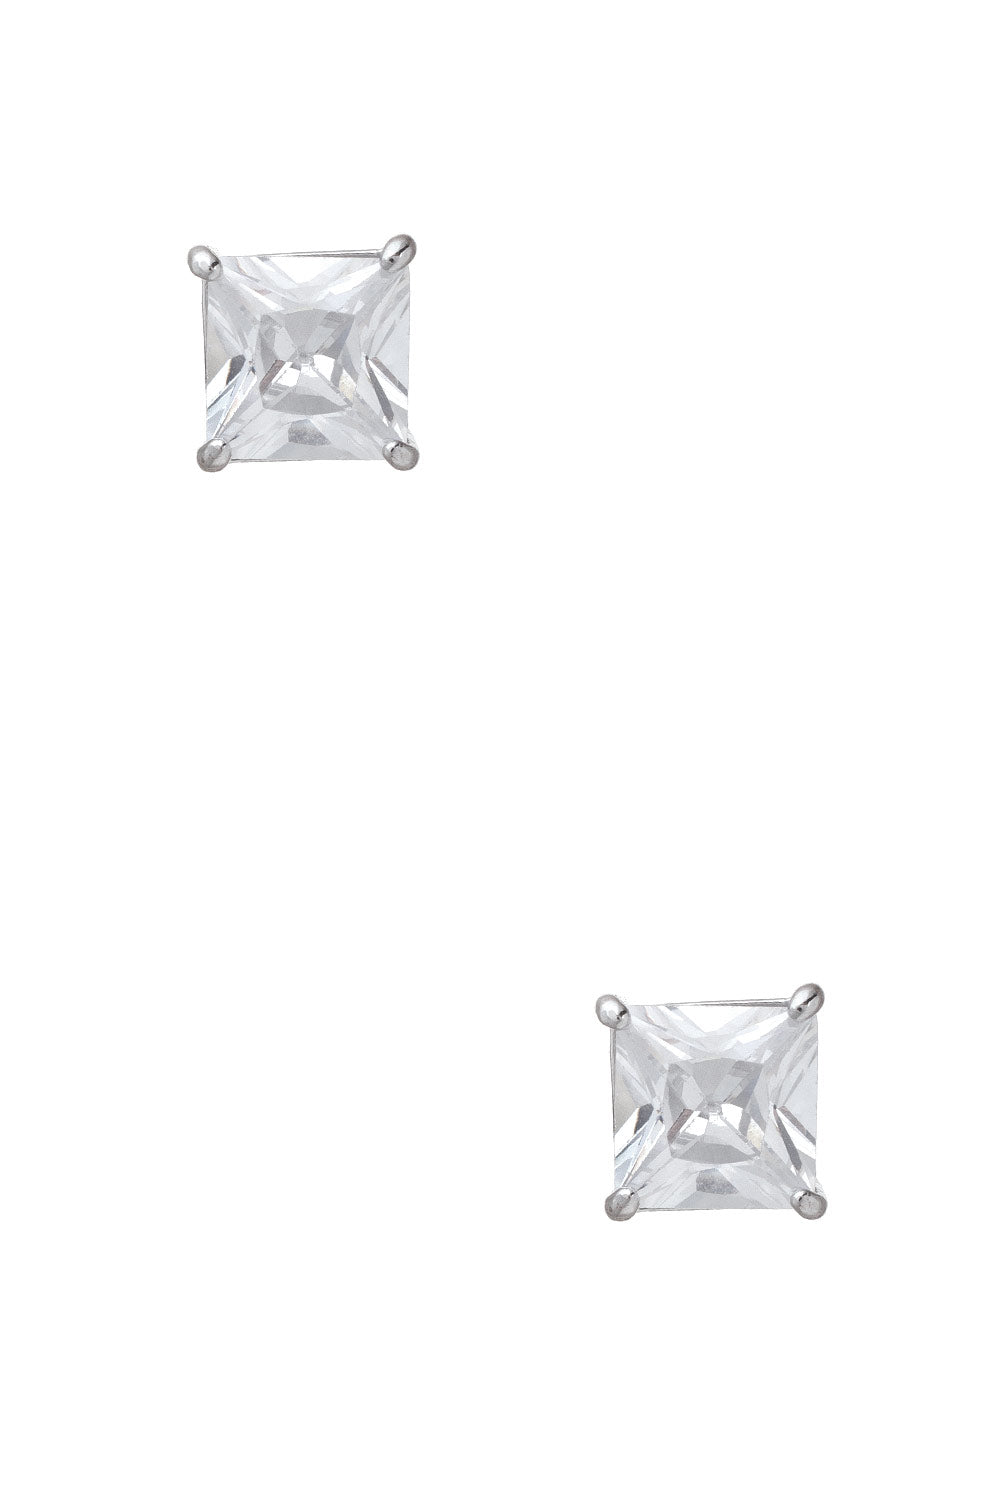 Type 4 Crystal Chic Earrings